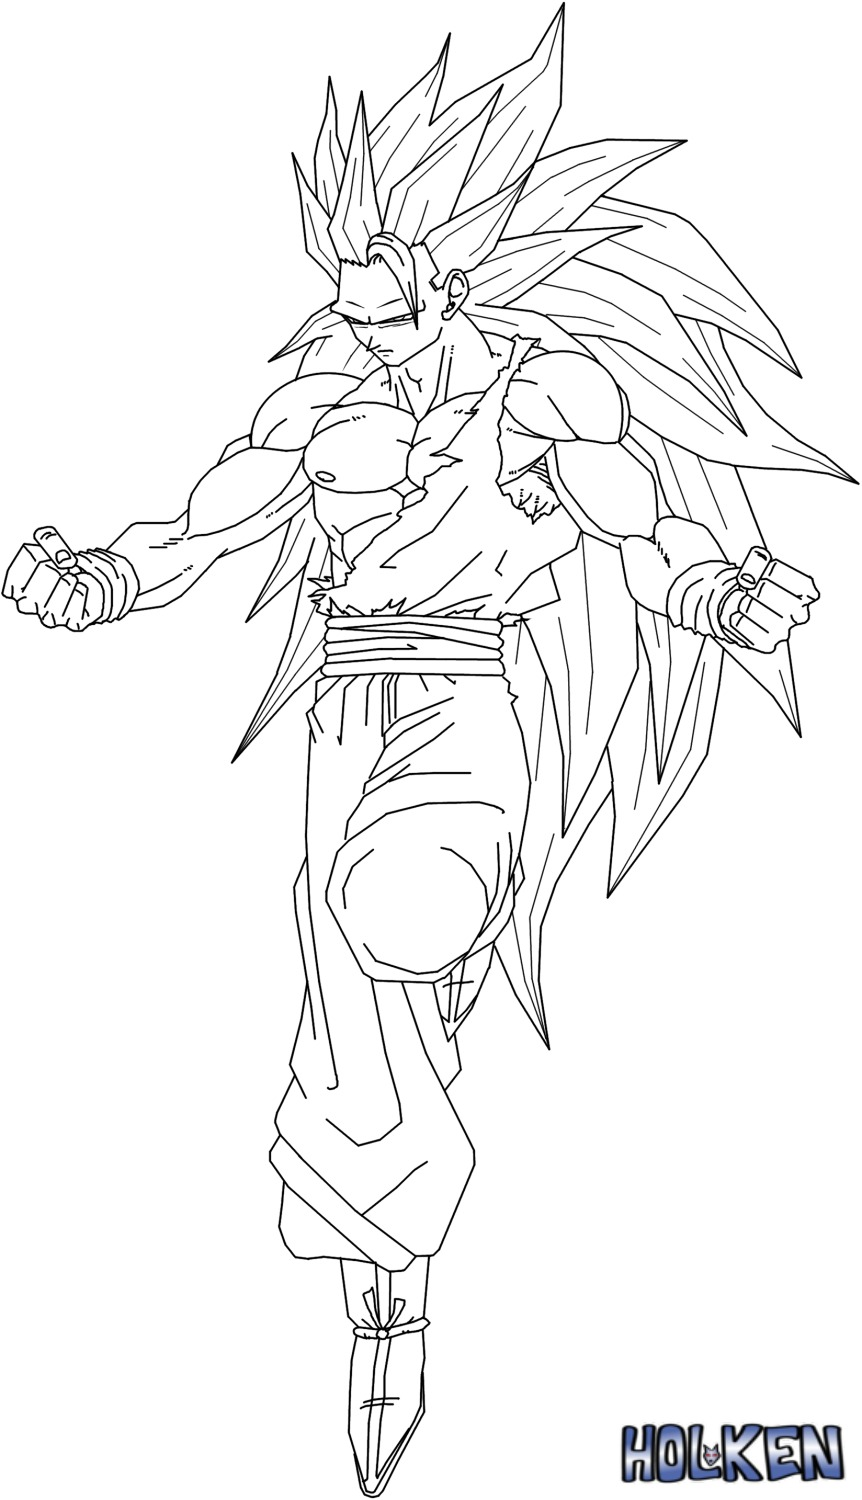 Evil goku free colouring pages for Goku super saiyan 5 coloring pages